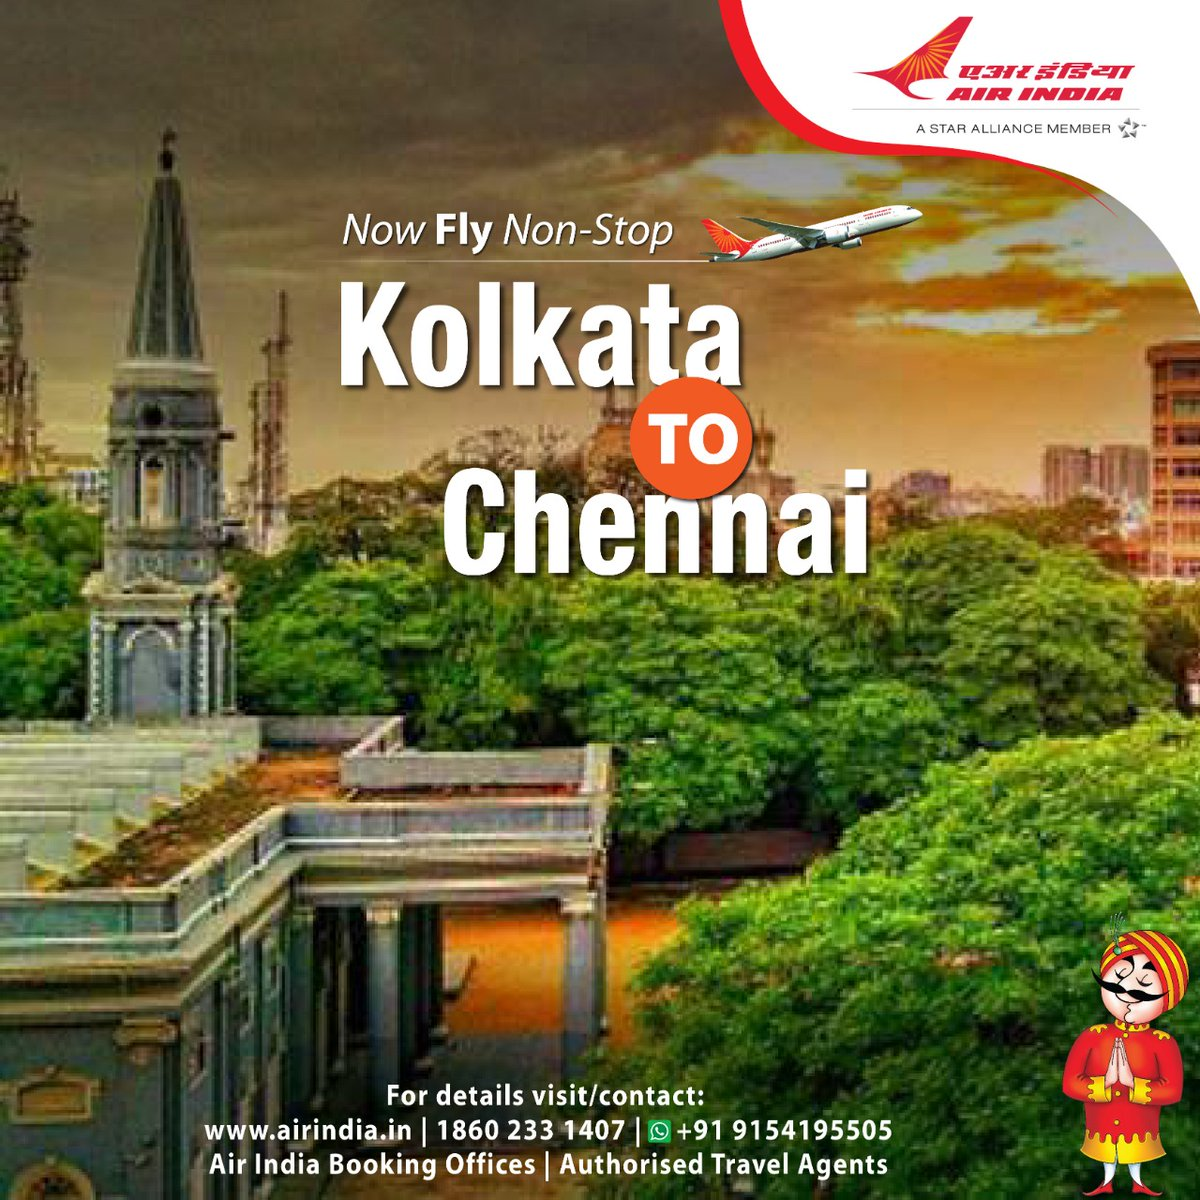 #FlyAI : Fly non-stop from Kolkata to Chennai.  To book seats, please visit our website  or call us on 18602331407.